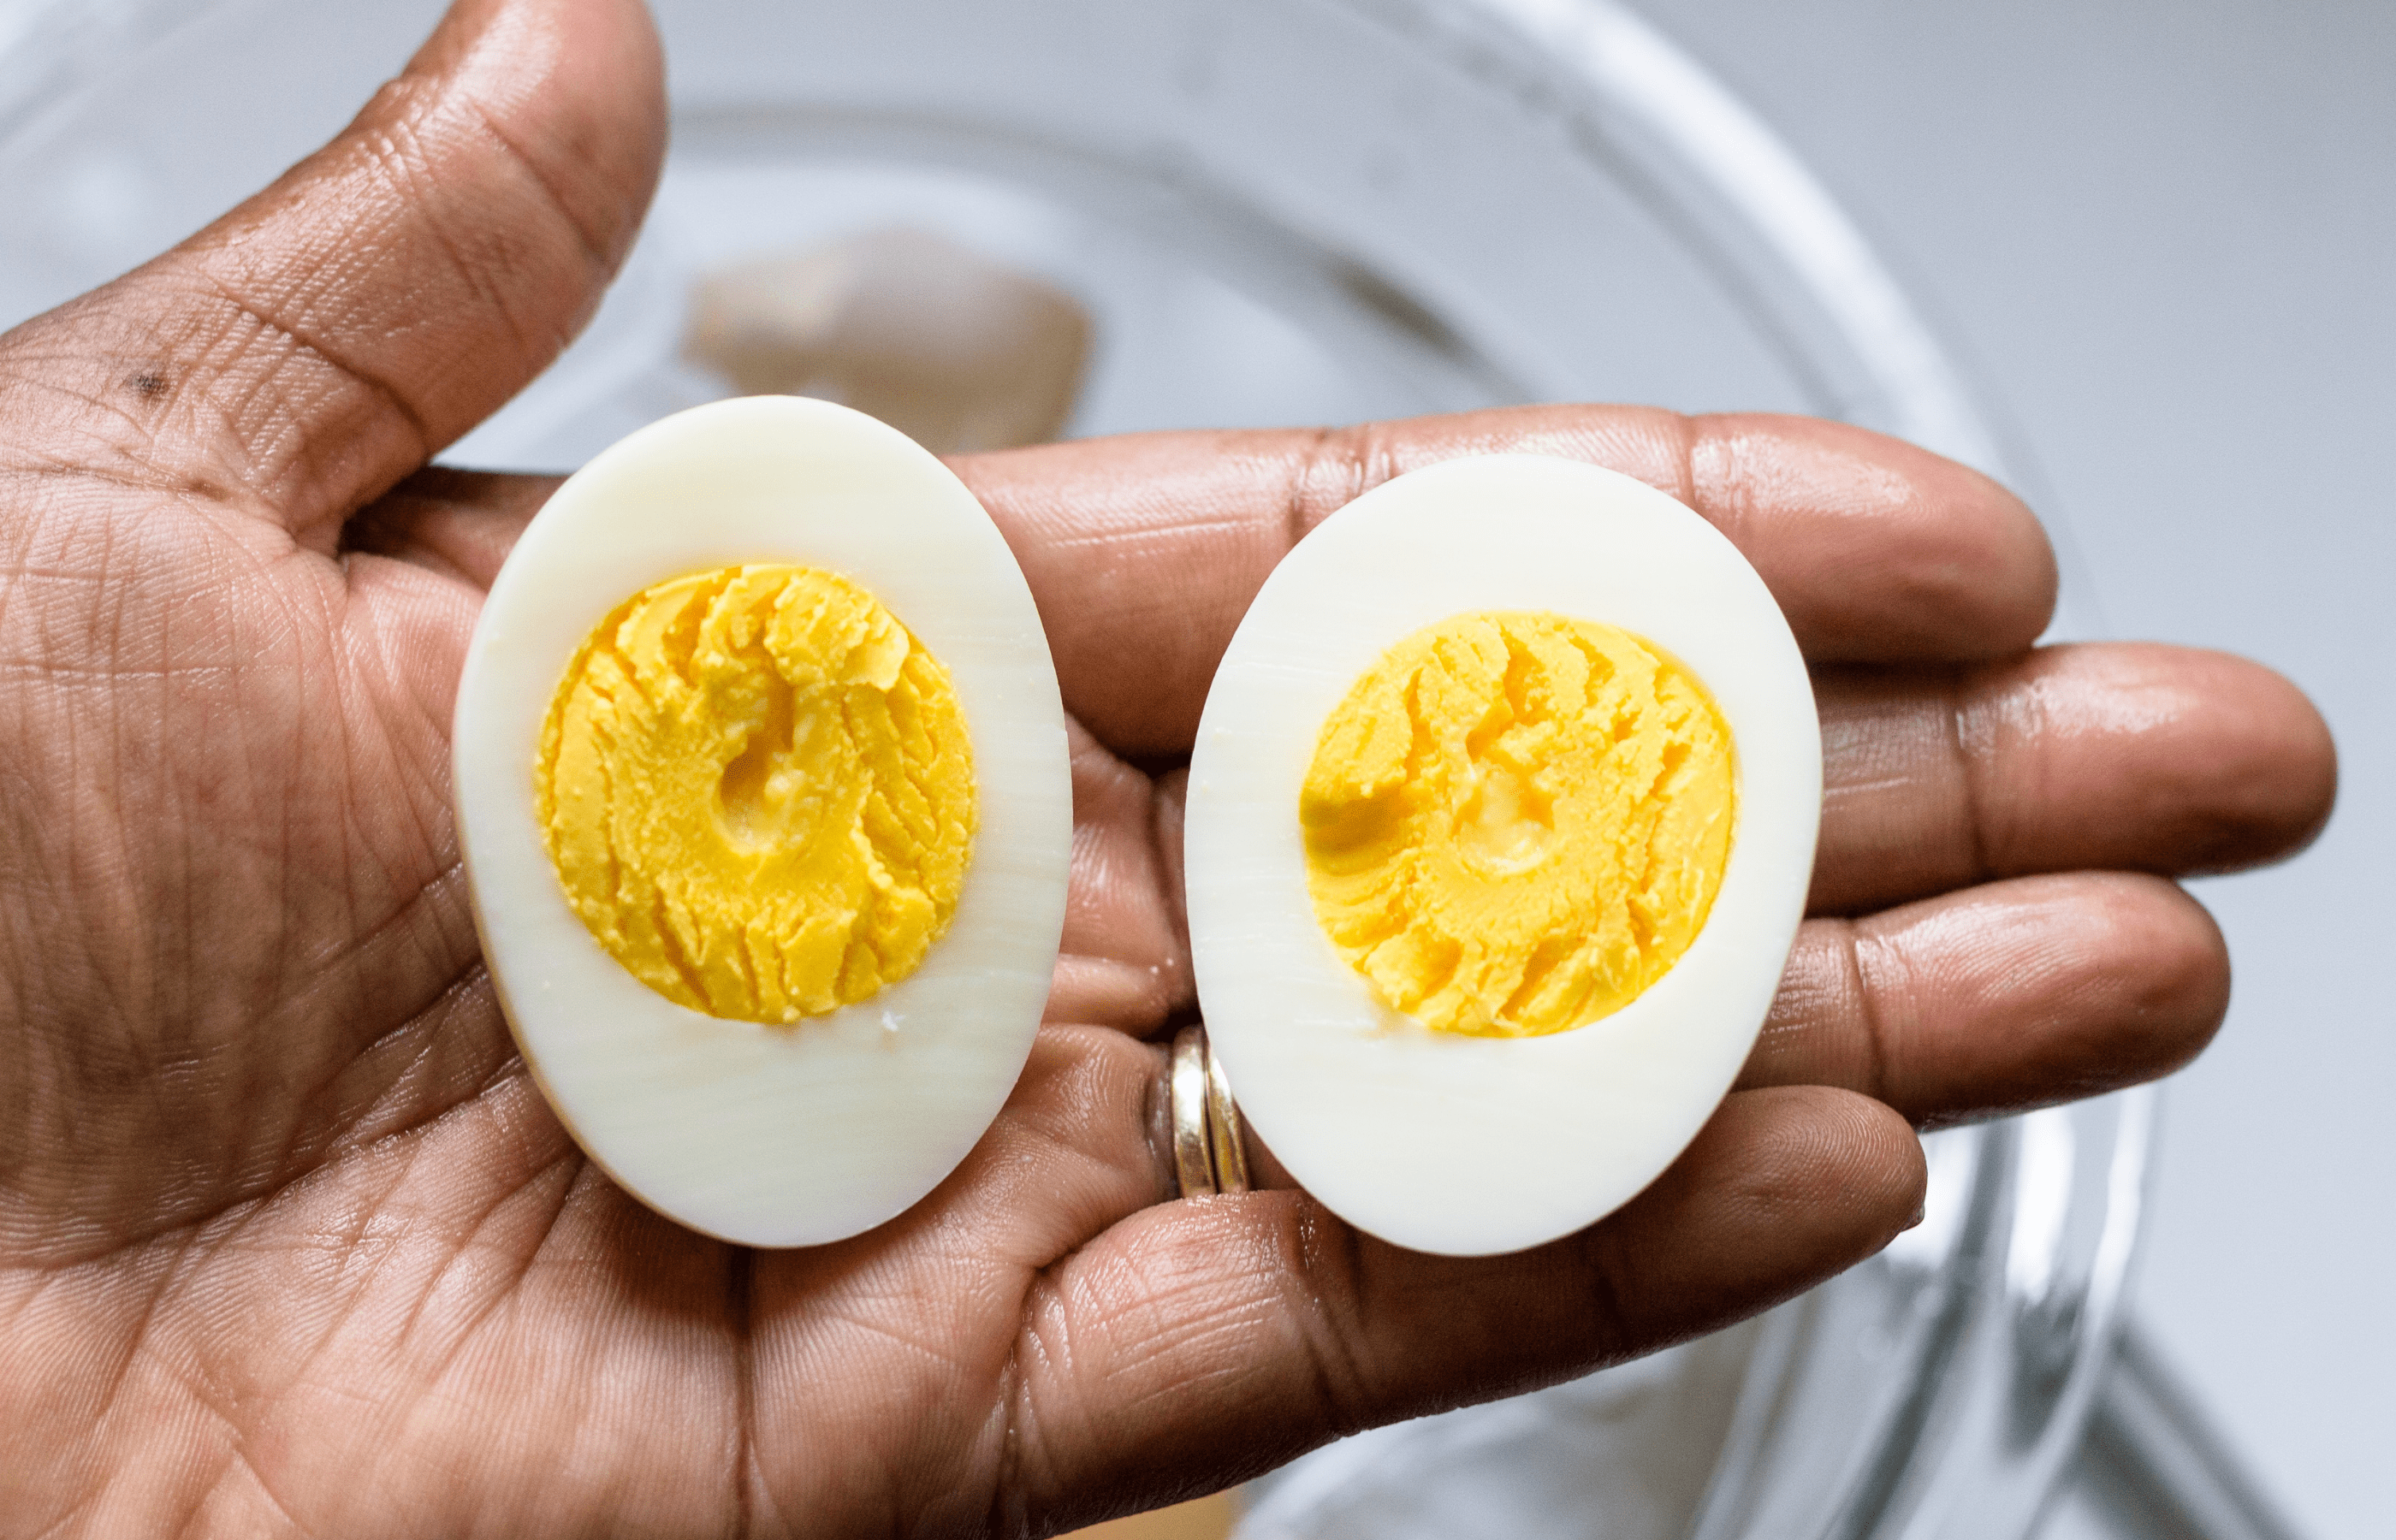 holding a sliced perfectly boiled egg